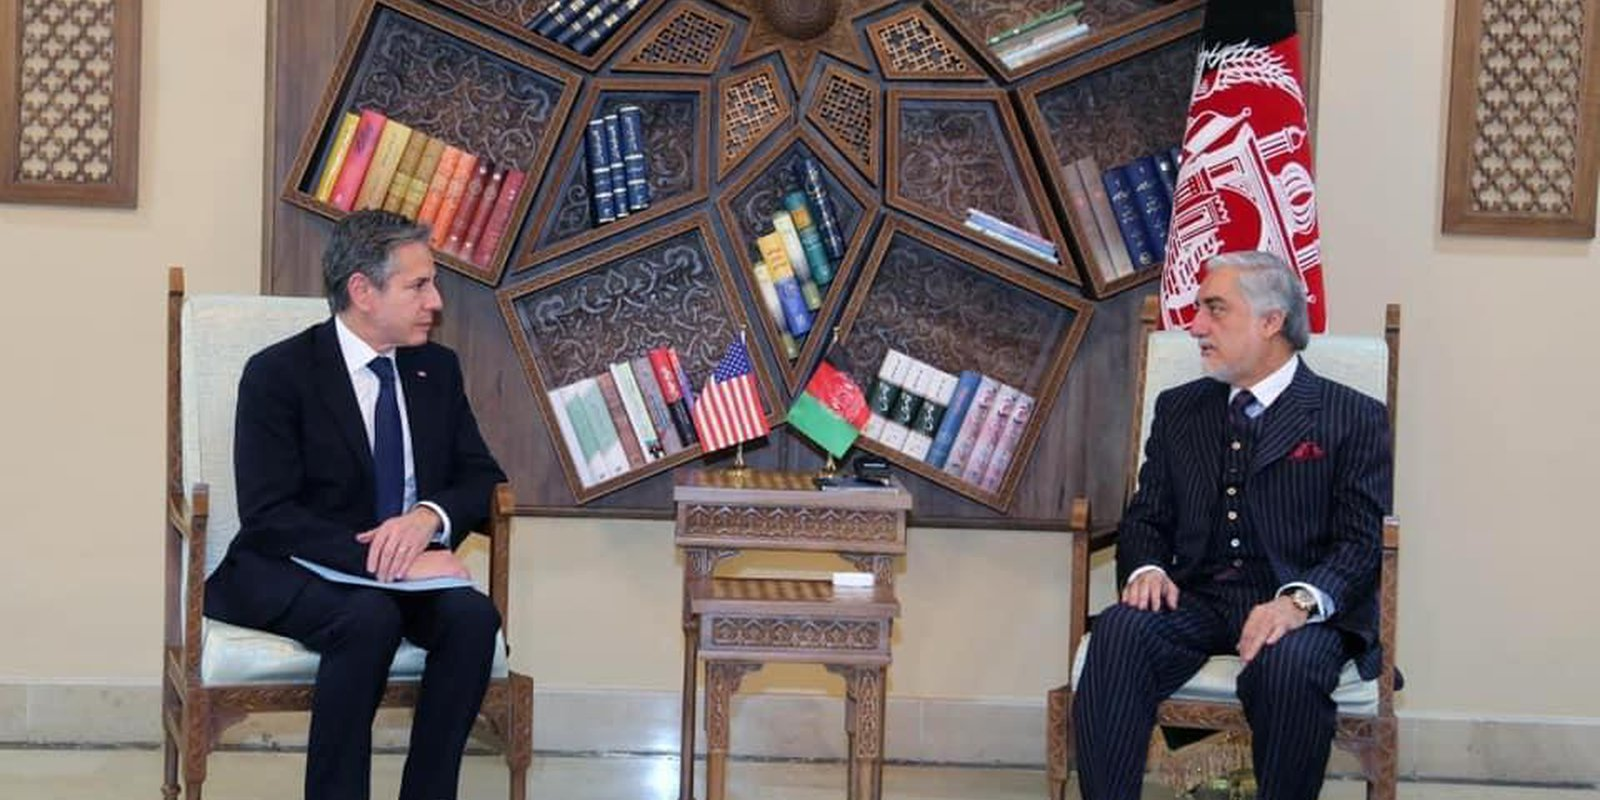 United States Secretary of State, Antony Blinken (L) meets Chairman of the High Council for National Reconciliation Abdullah Abdullah (R) on the withdrawal of U.S. troops from Afghanistan in Kabul, Afghanistan on April 15, 2021. (Photo by High Council For National Reconciliation / Handout/Anadolu Agency via Getty Images)